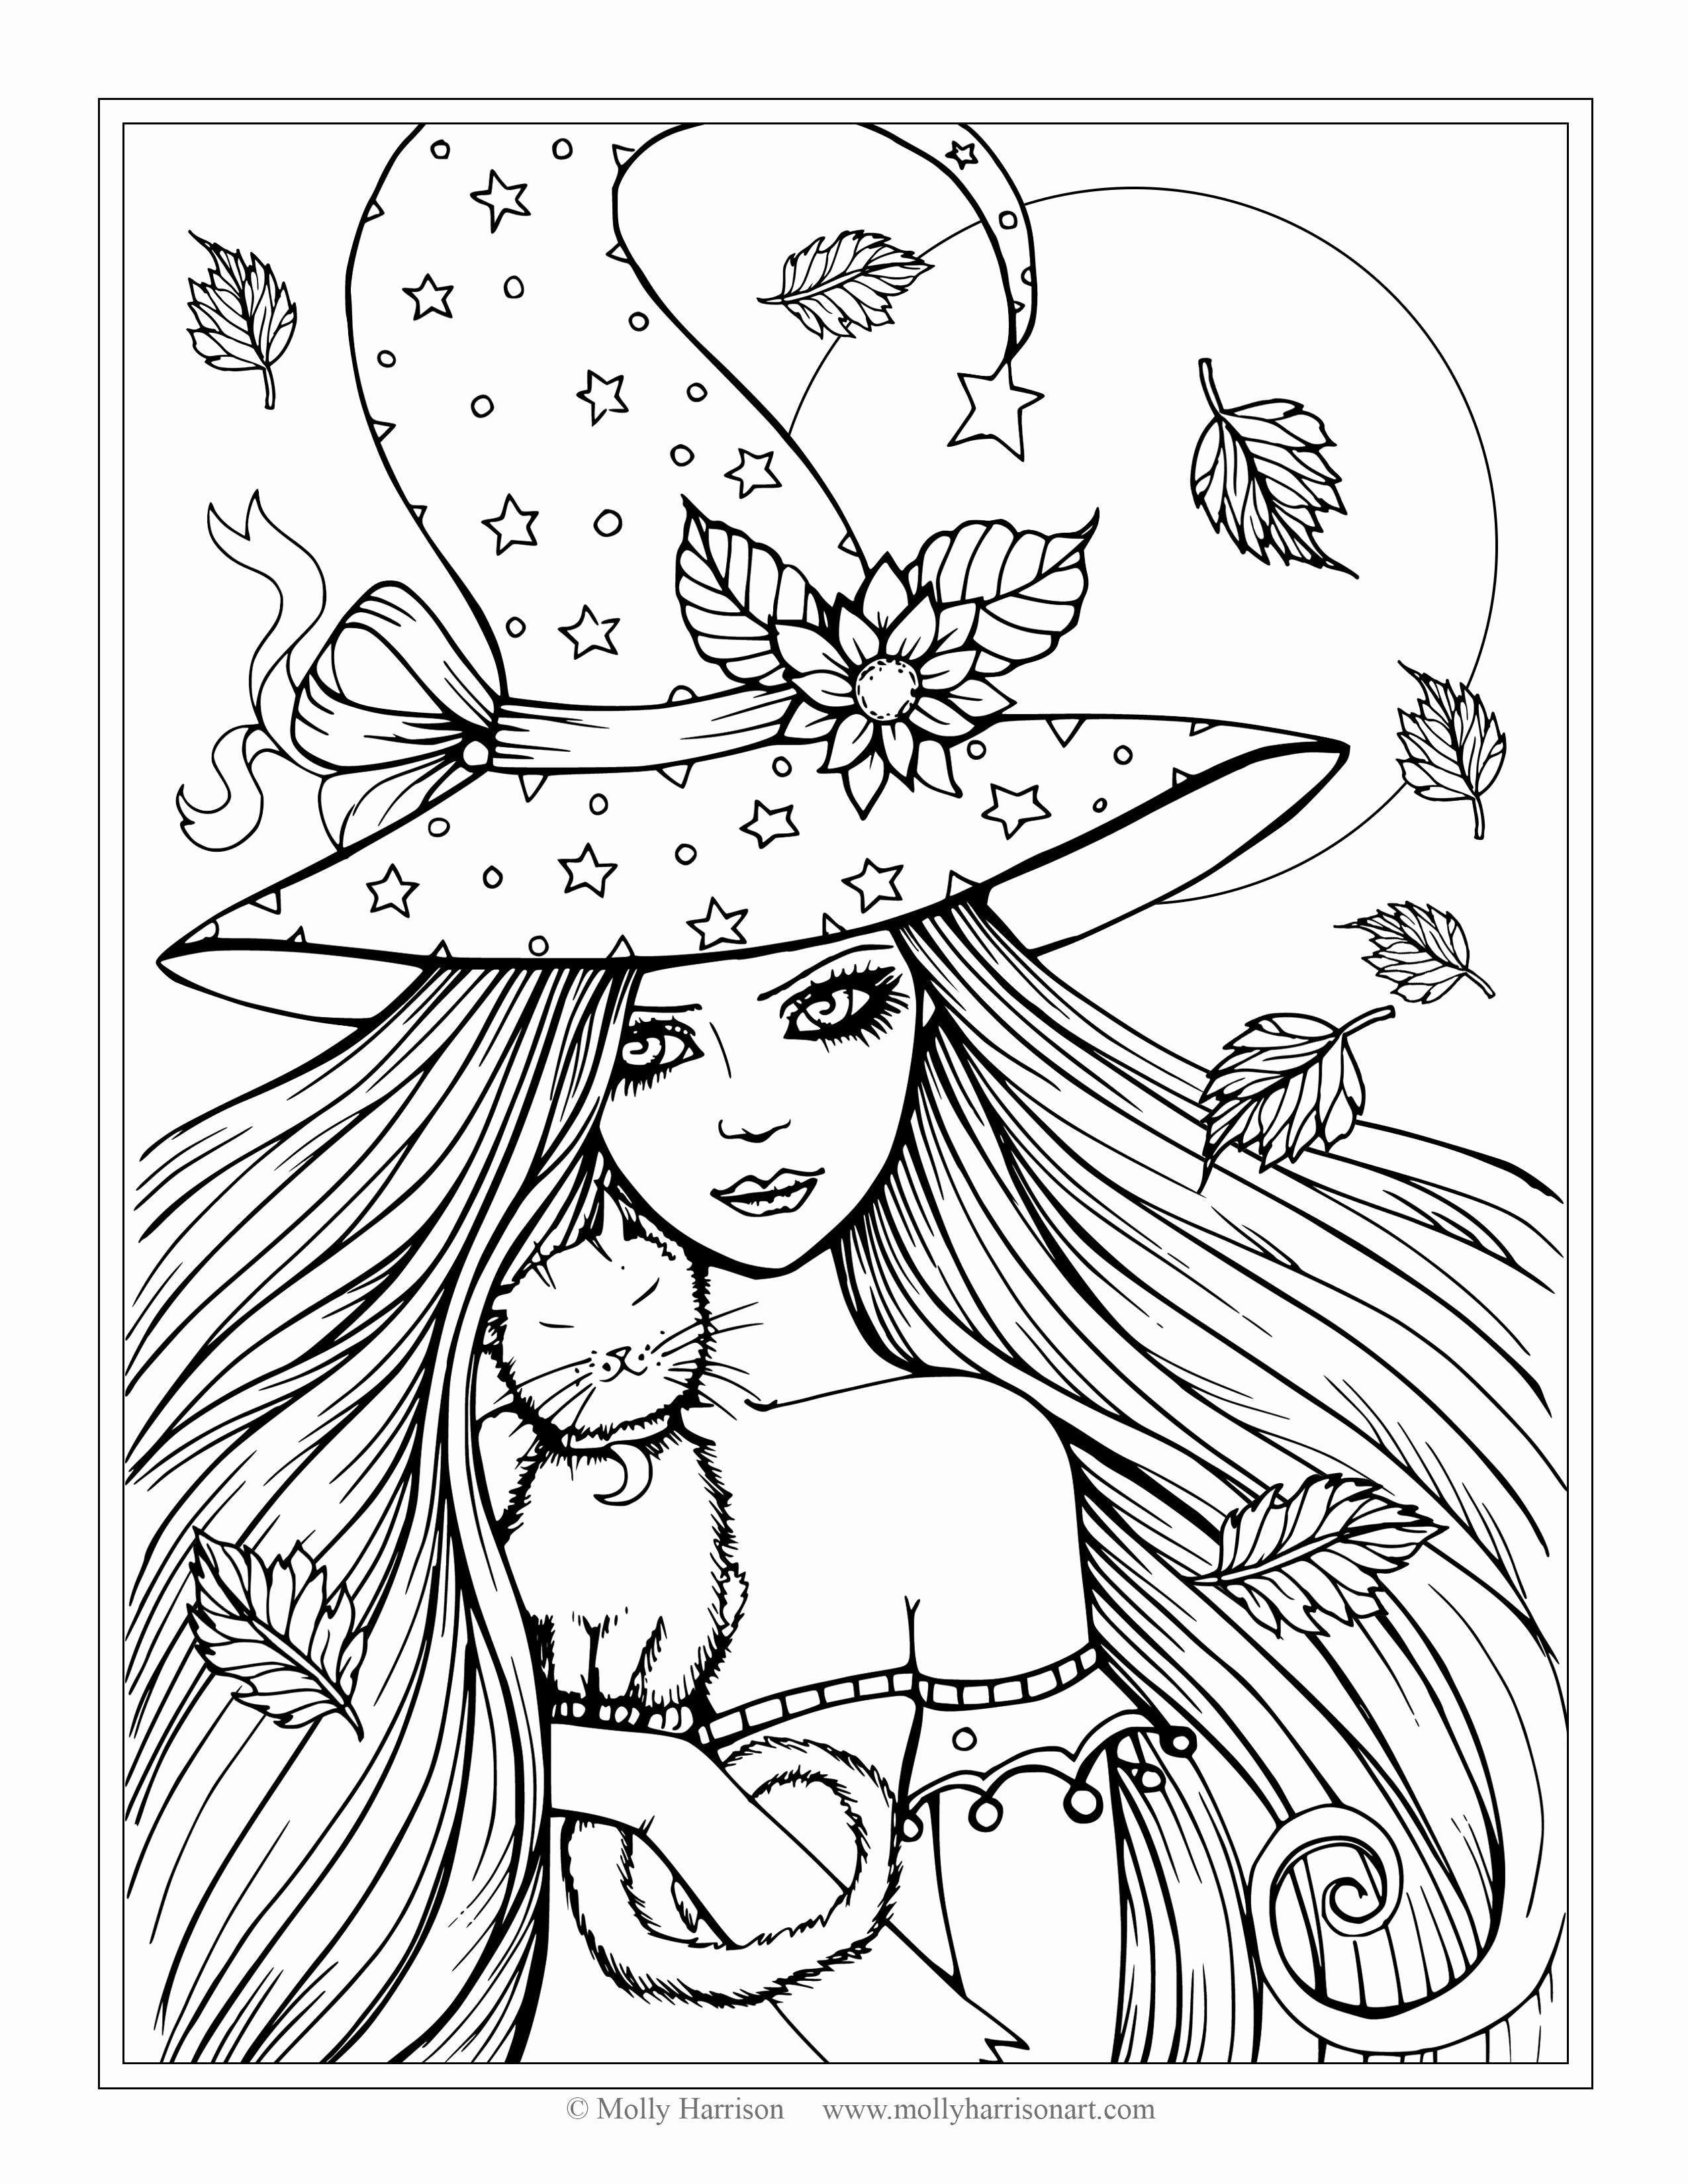 coloring pages to print for girls Download-Coloring Pages for Kids Lovely Free Coloring Pages Elegant Crayola Pages 0d Archives Se Telefonyfo Anime Girl Coloring Pages Printable 15-k